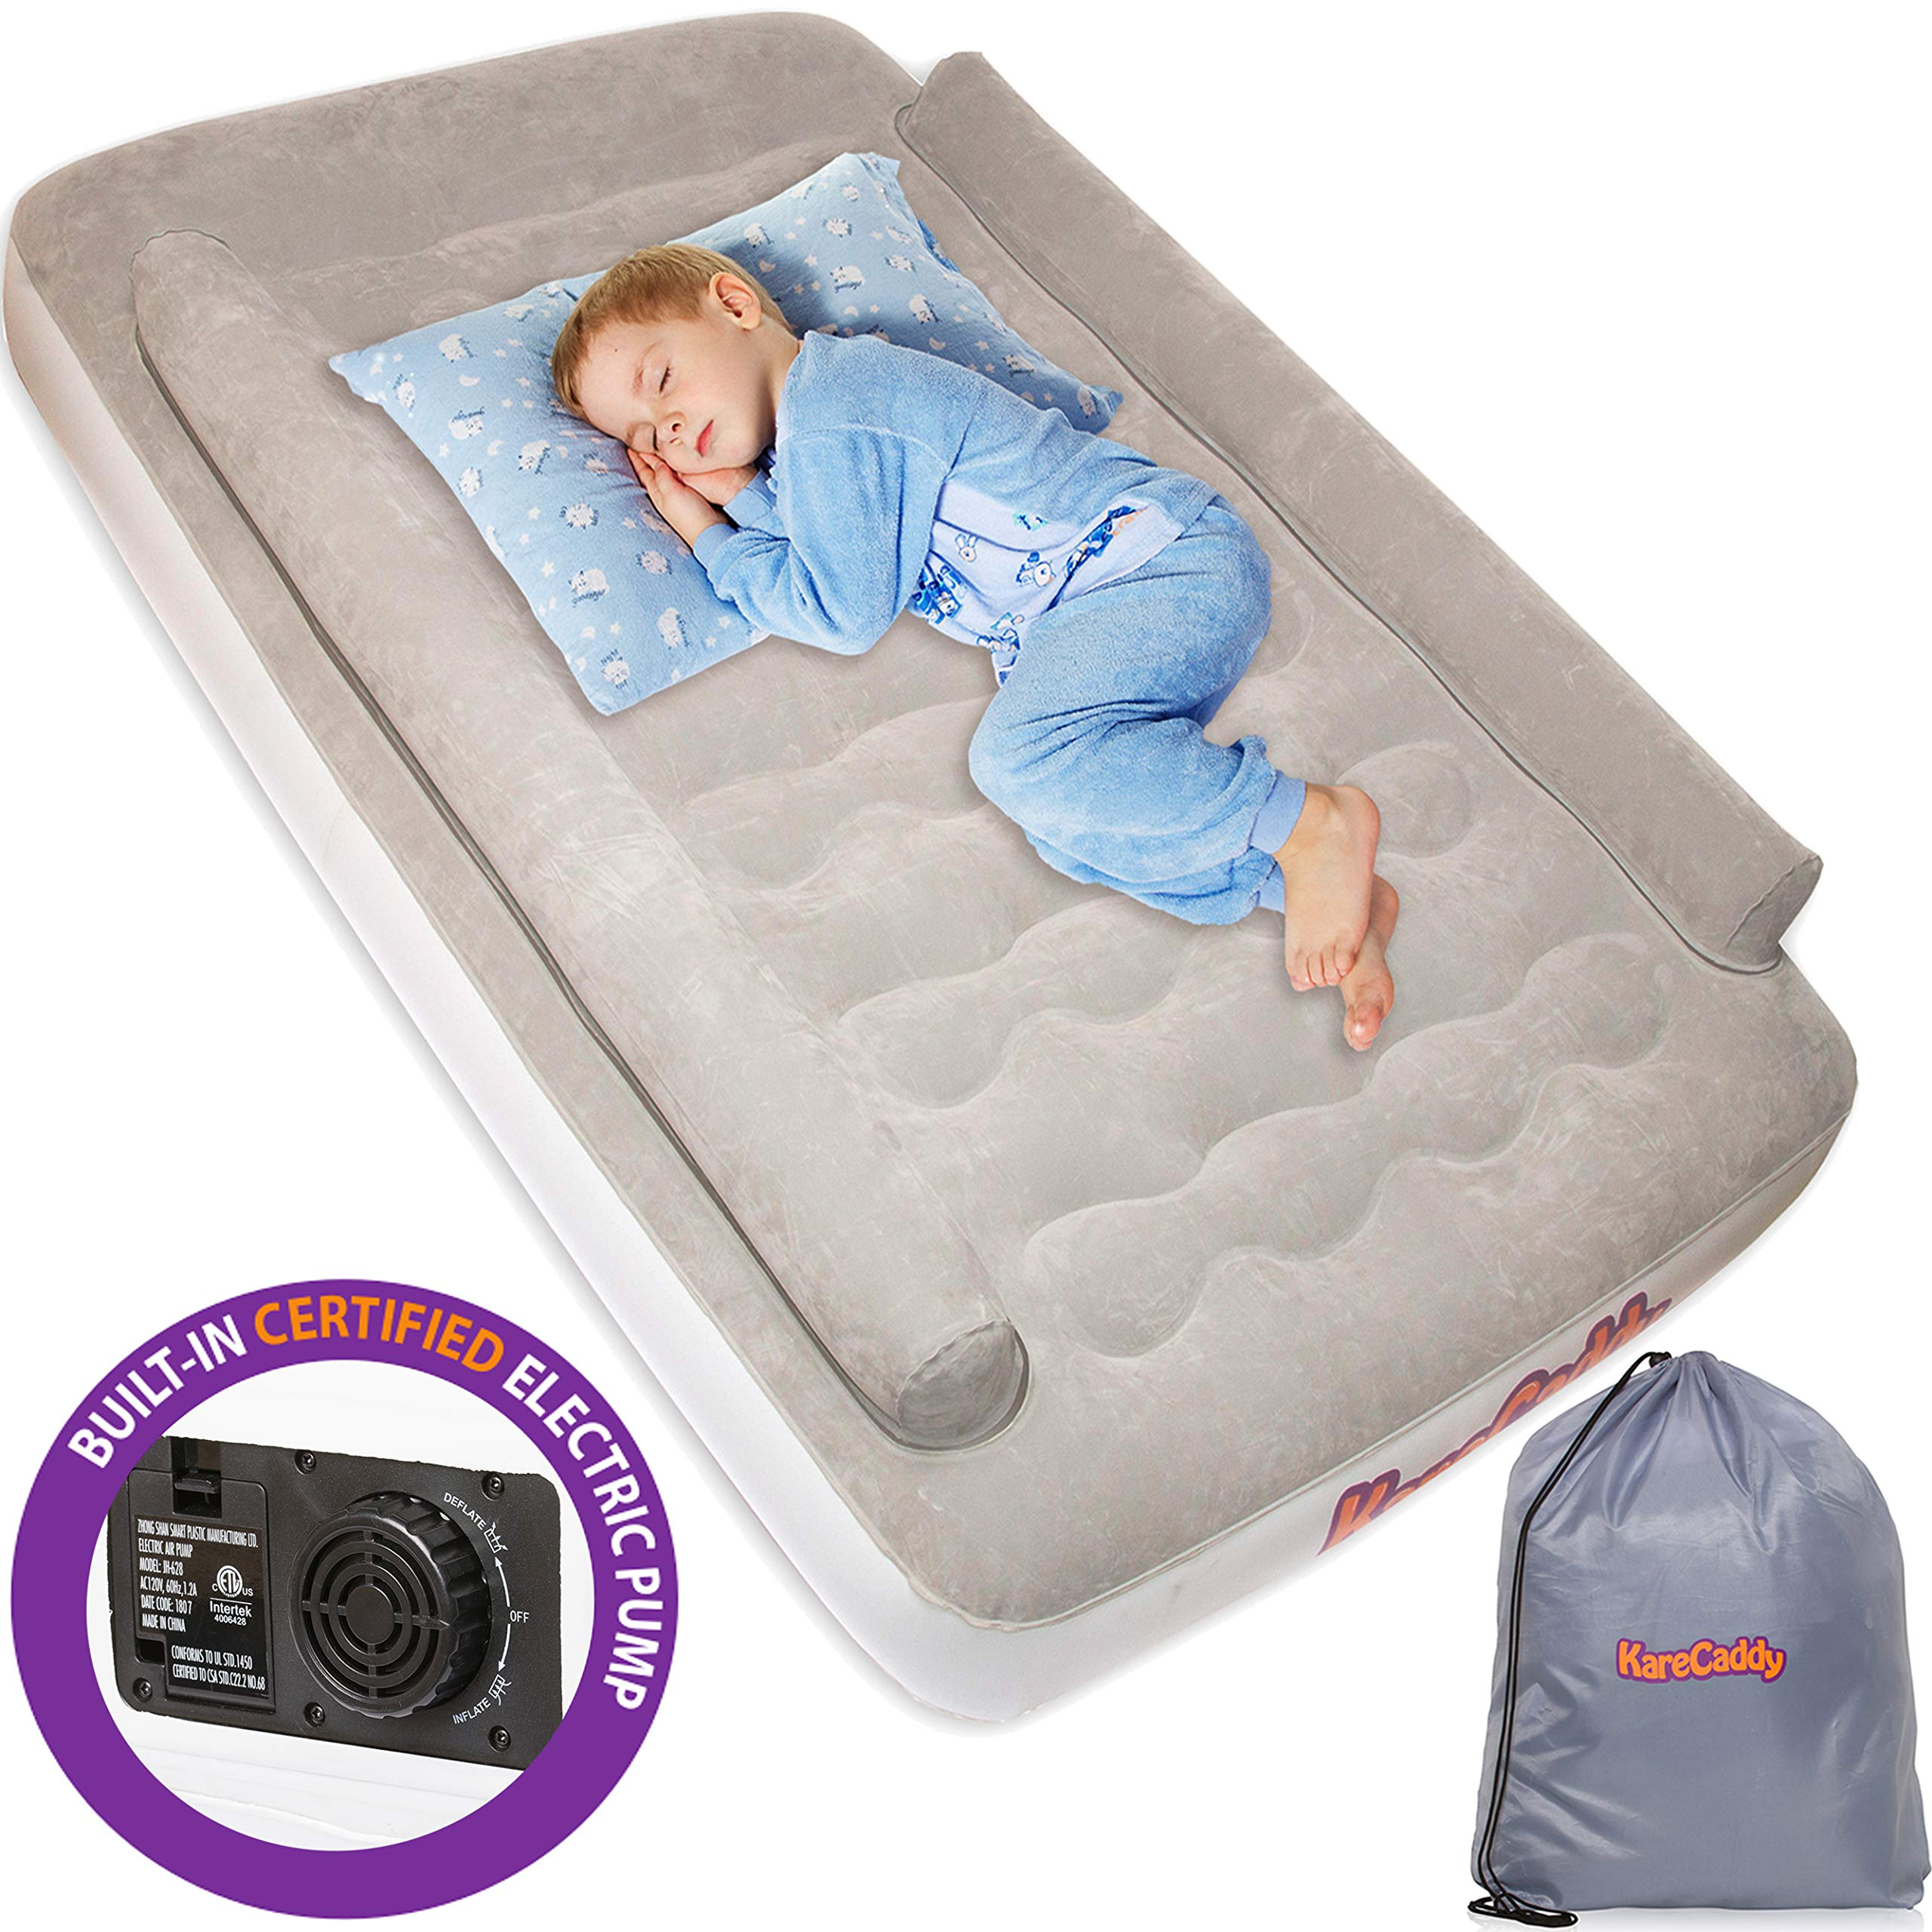 KareCaddy Toddler Air Mattress - Kids AirBed with Built-in Electric Pump, Kids Air Mattress with Sides Rails, Inflatable Toddler Travel Bed with Bumpers, Camping Portable Kids Air Bed by KareCaddy